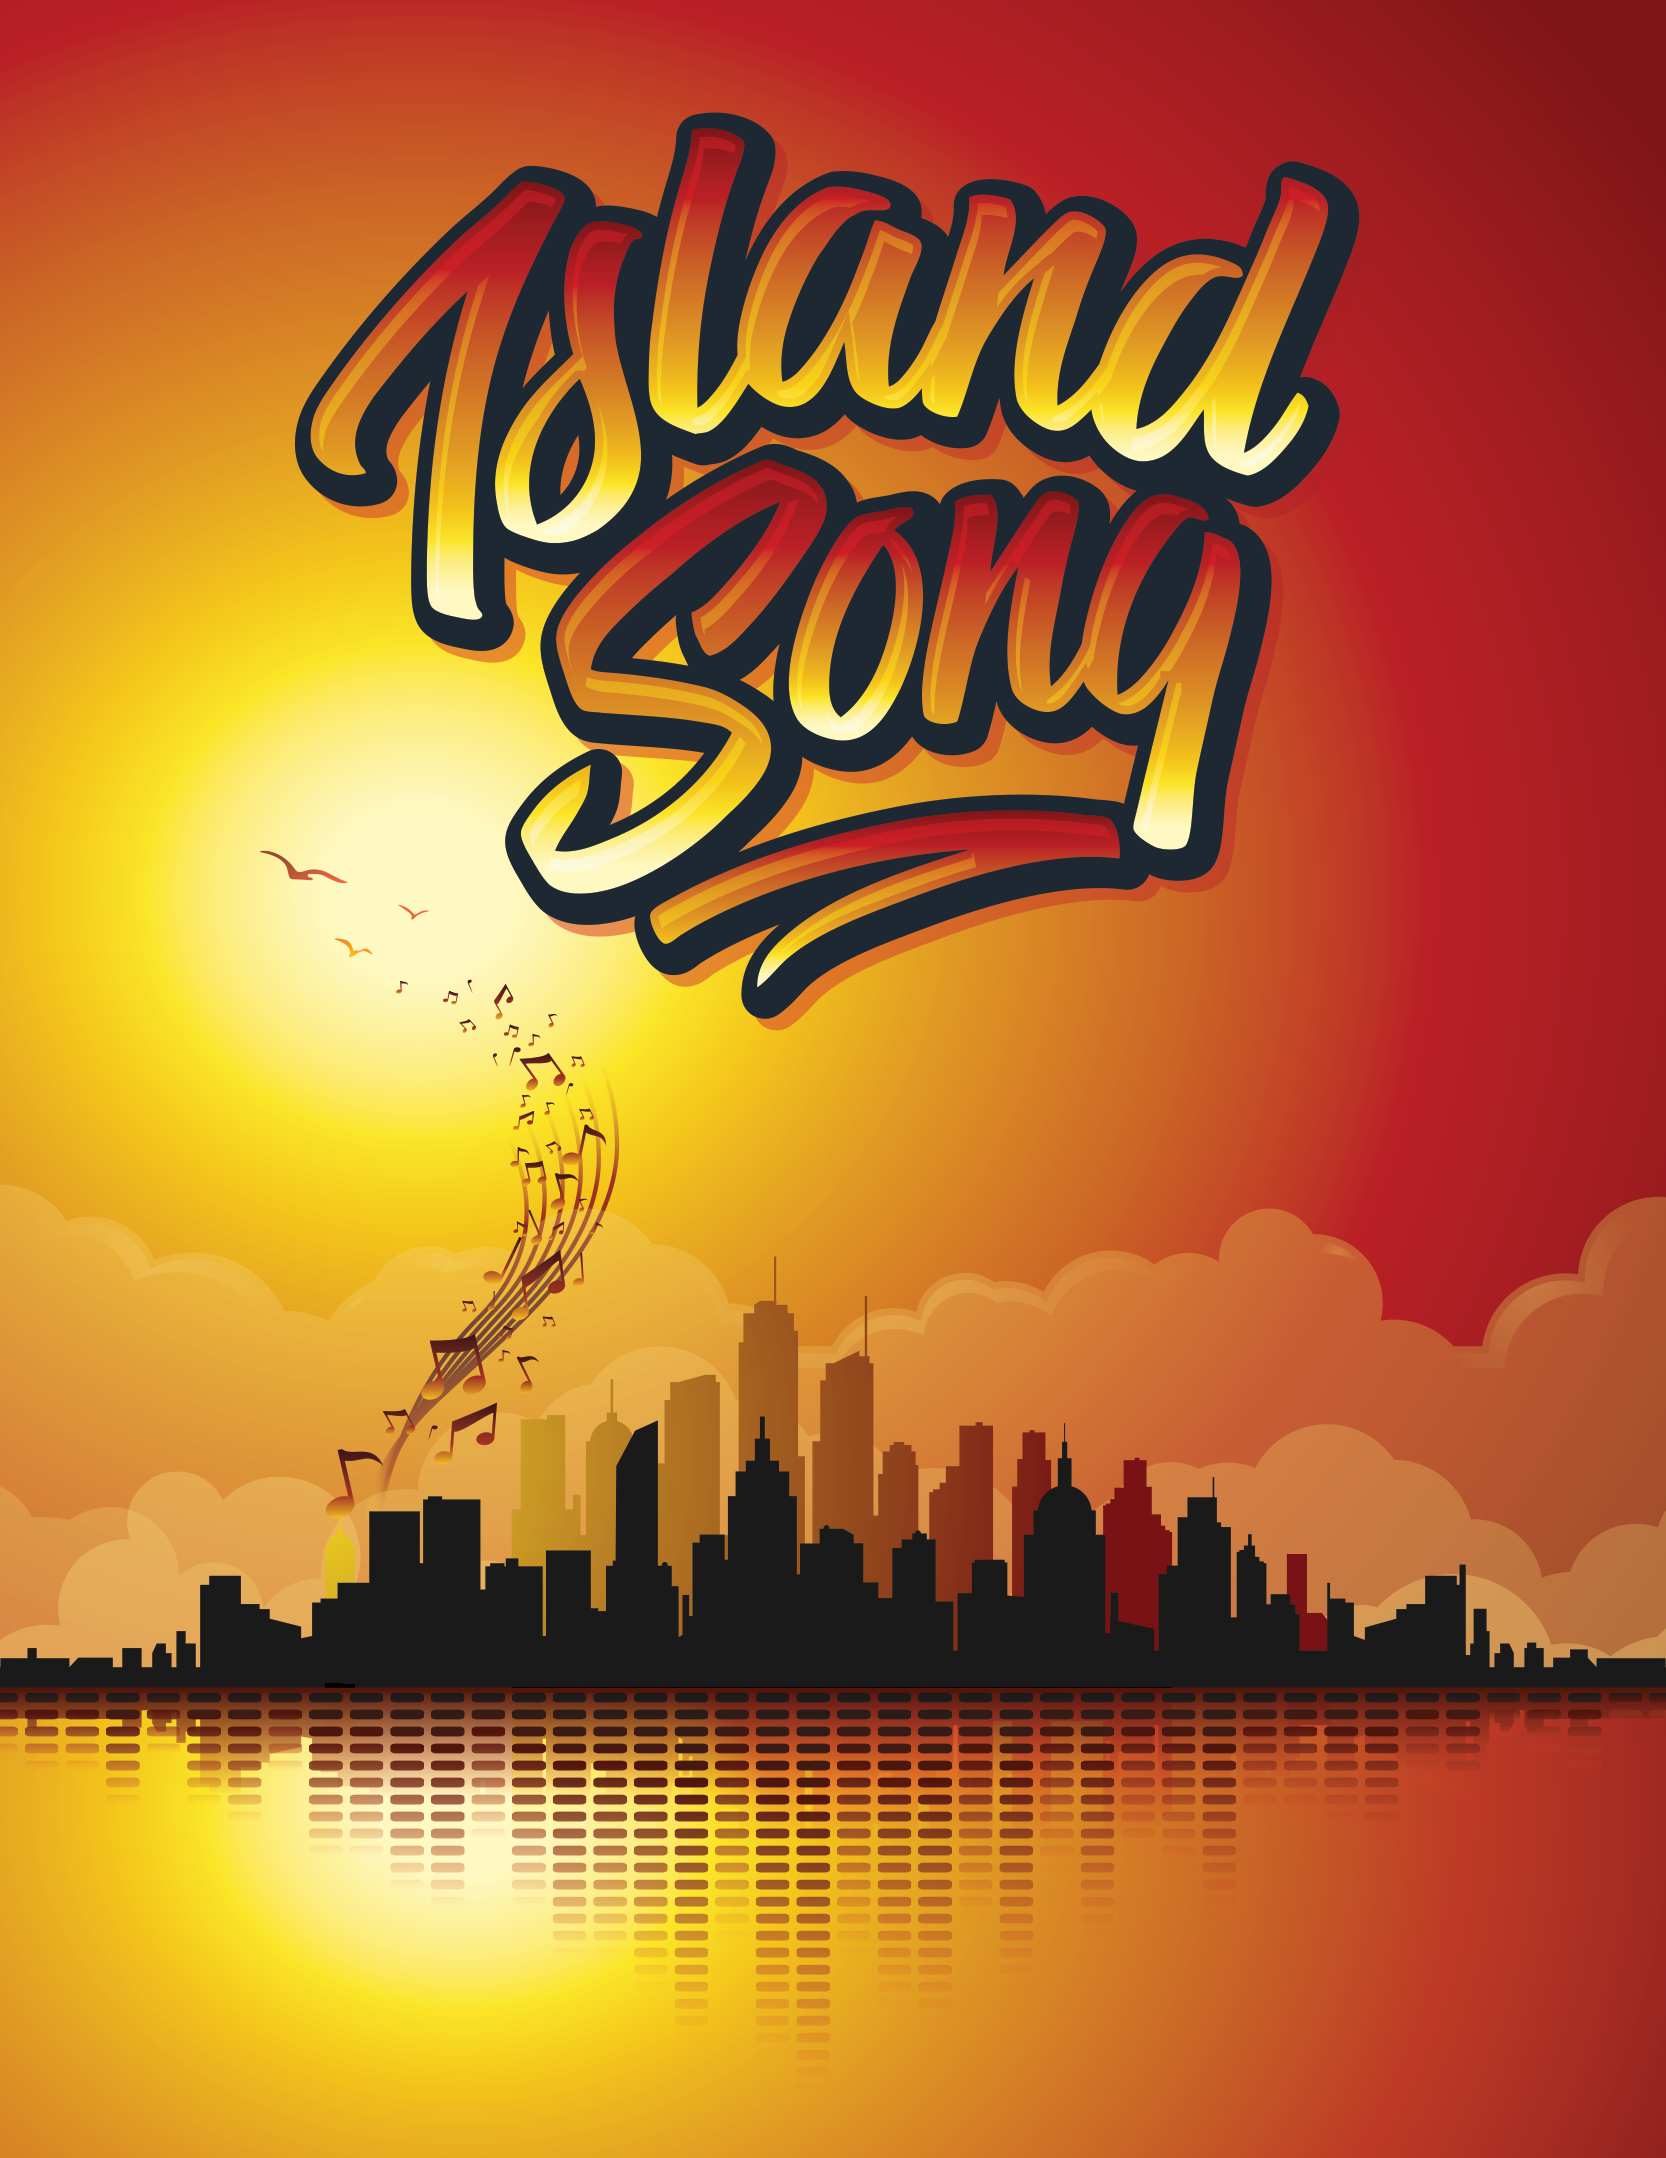 20160129_ATF_IslandSong_poster_F1